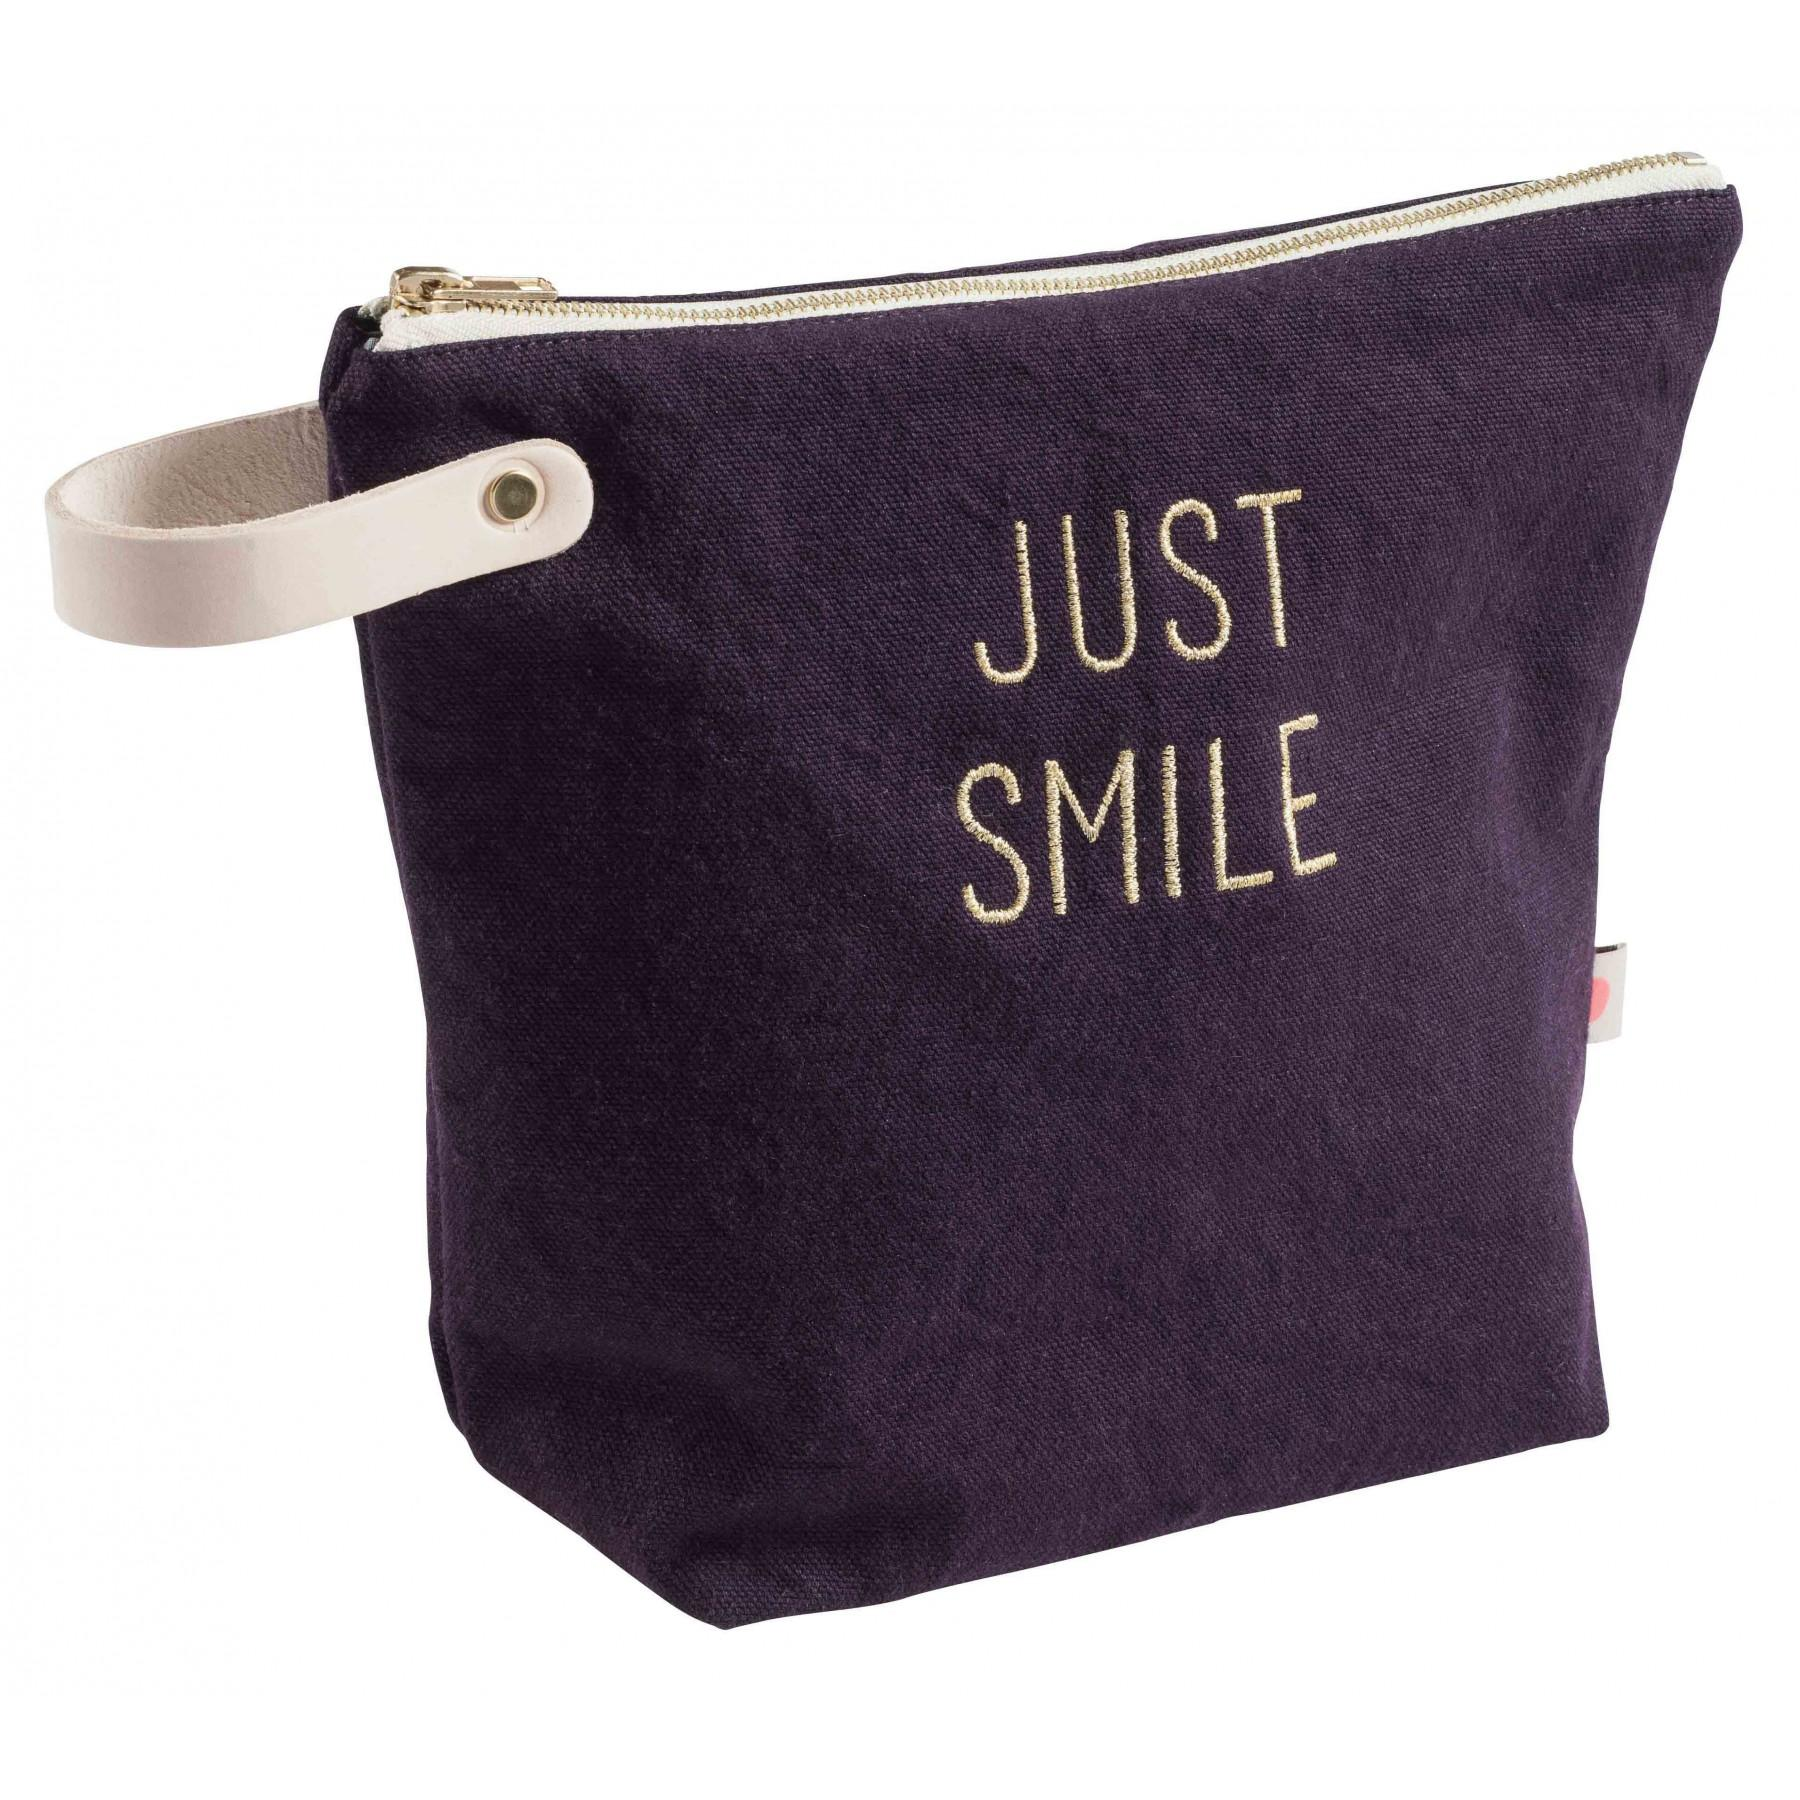 TROUSSE DE TOILETTE SMILE MURE GM